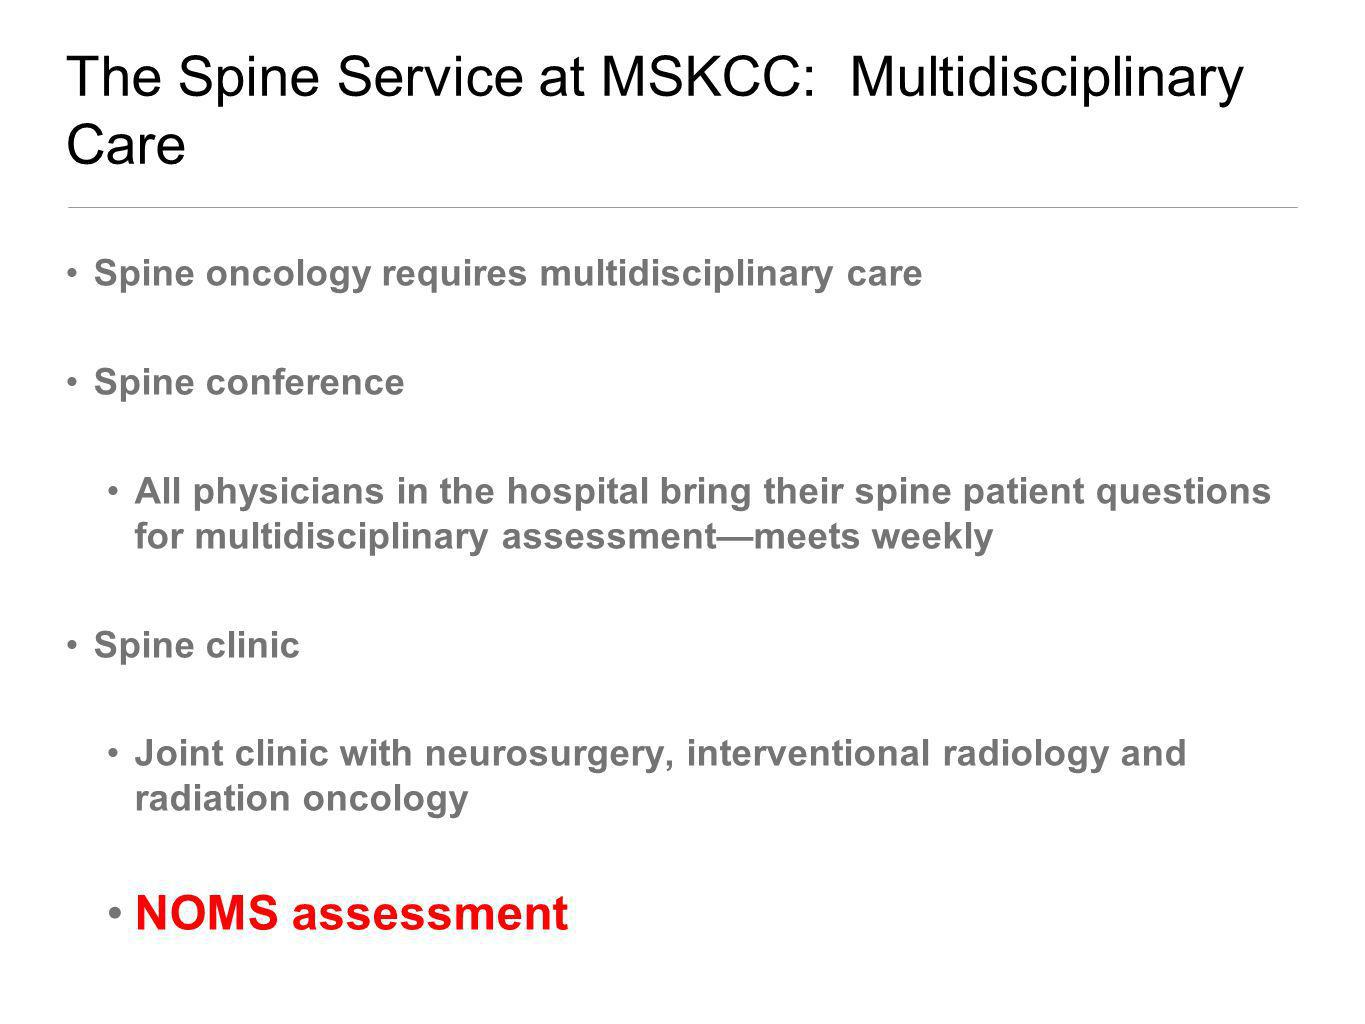 The Spine Service at MSKCC: Multidisciplinary Care